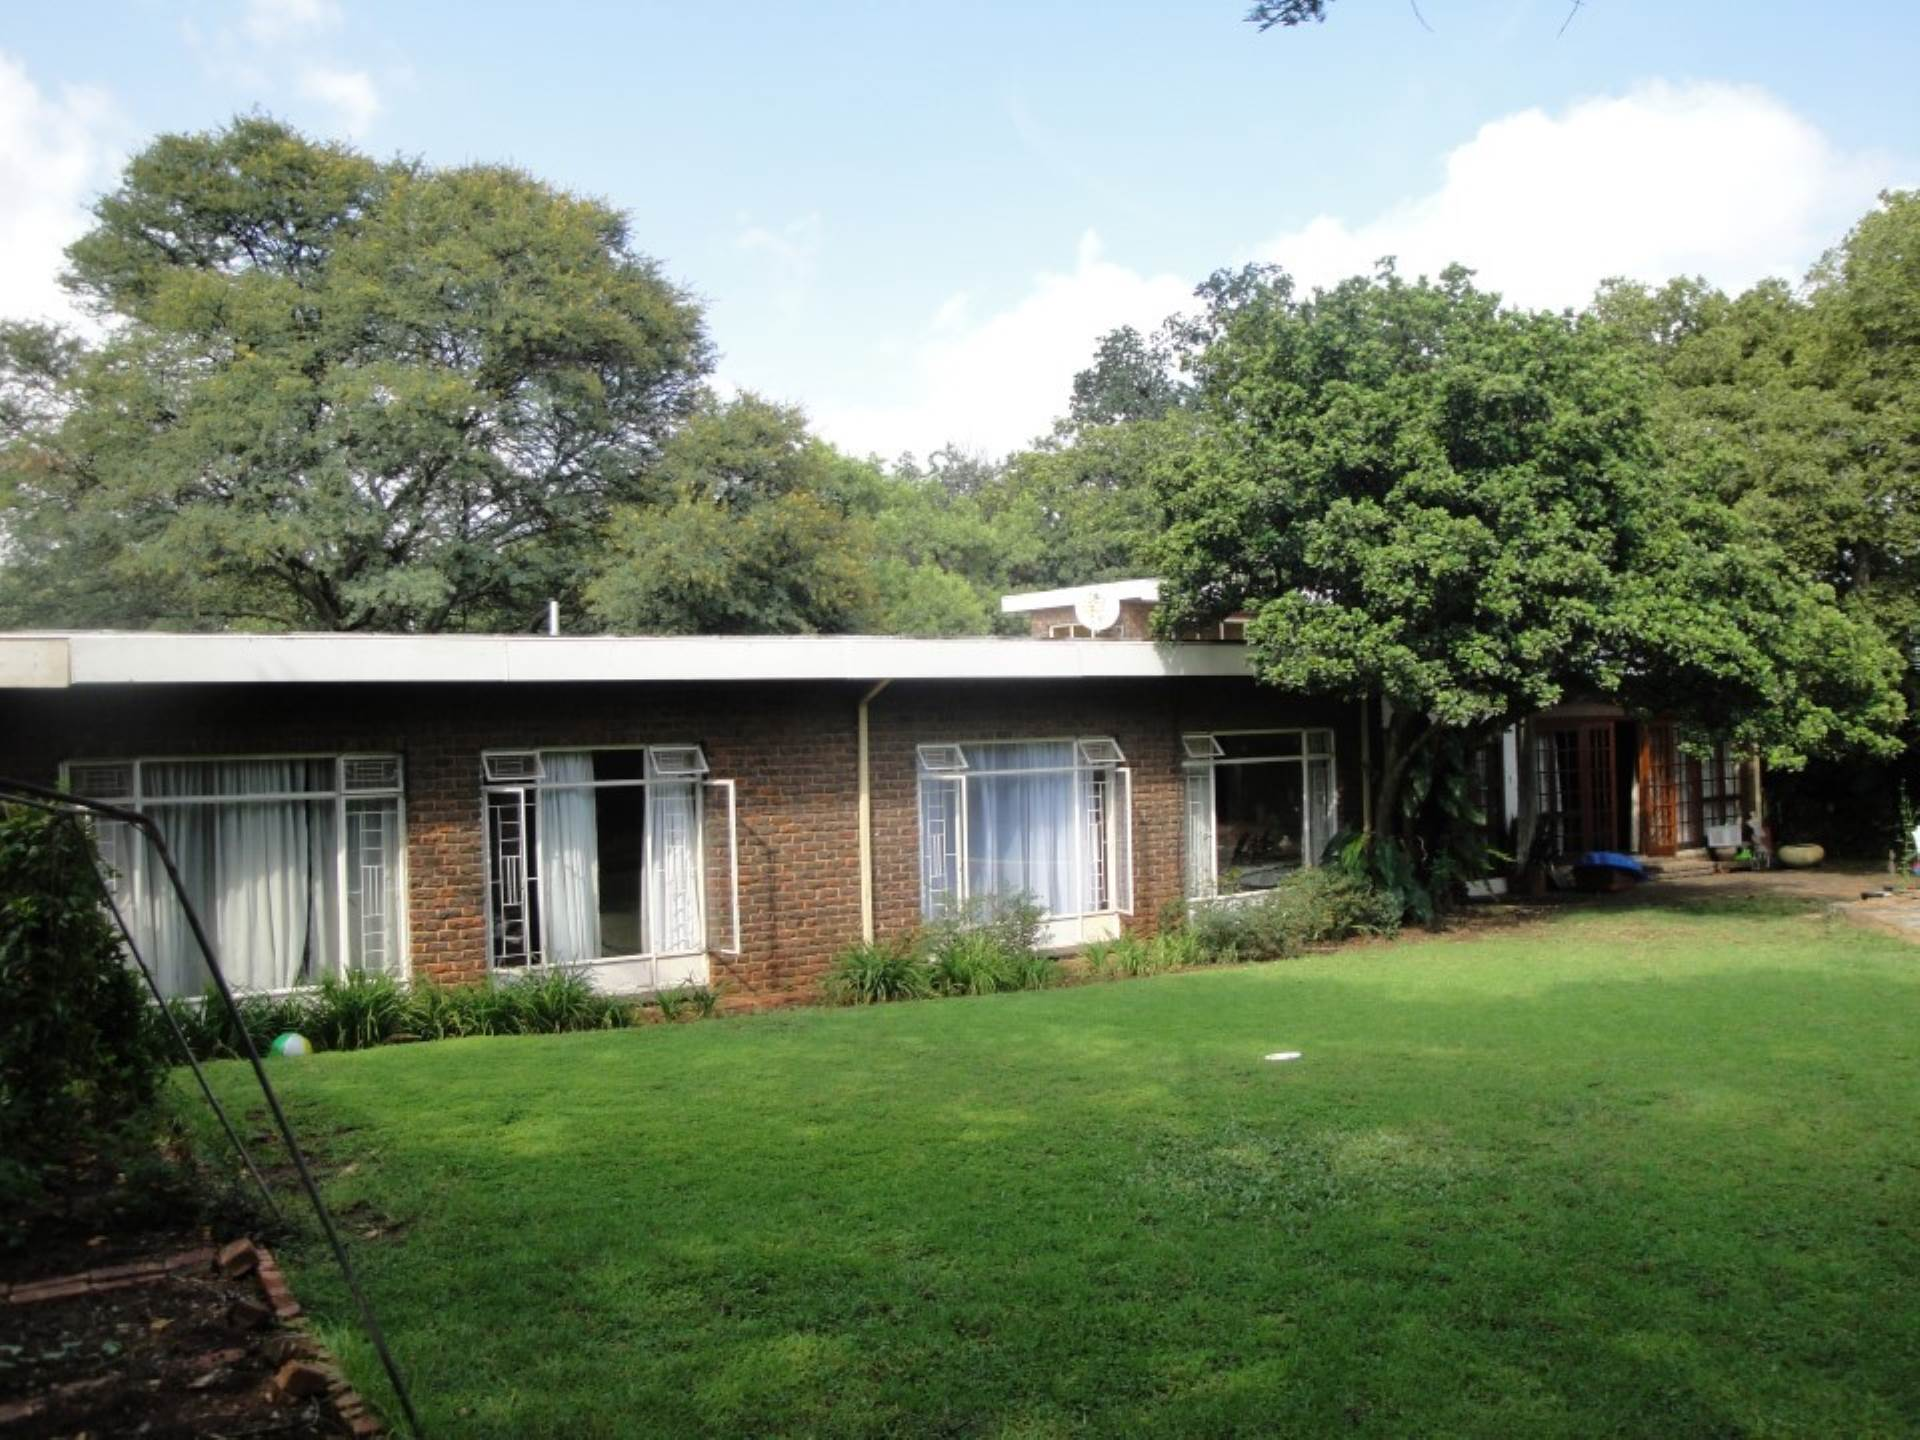 House for sale in eldoraigne centurion for r 2 350 000 for 6 bedroom house for sale